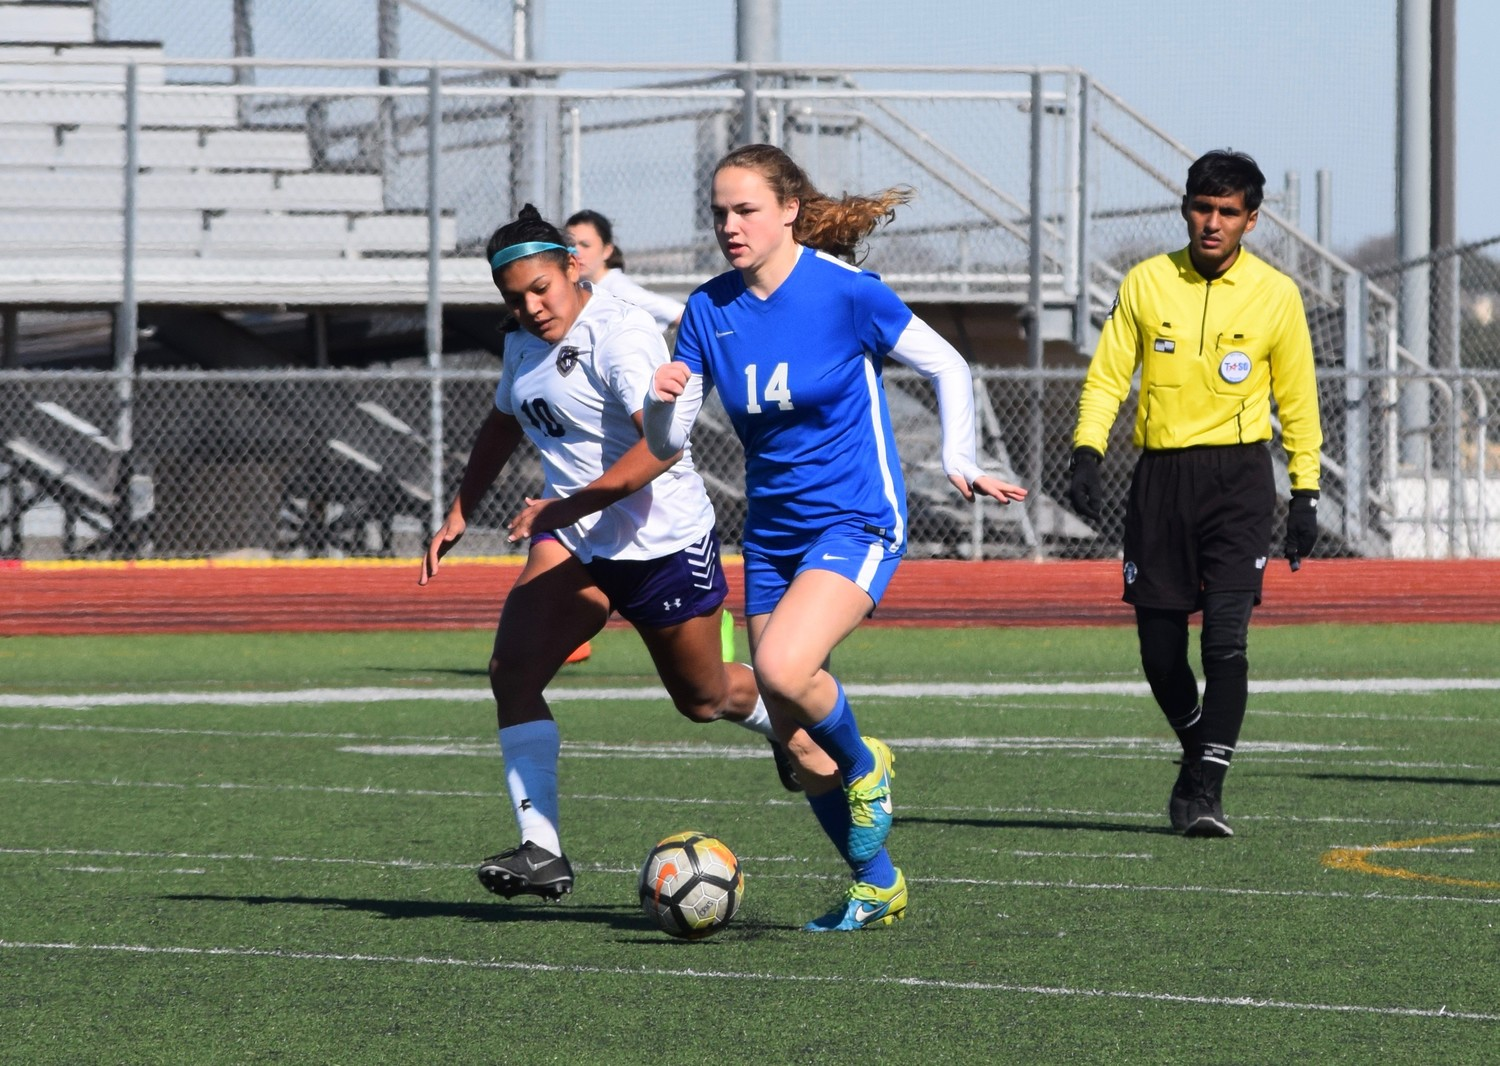 Defender Caroline Crone is one of three senior captains on the Leander girls' soccer team this season.